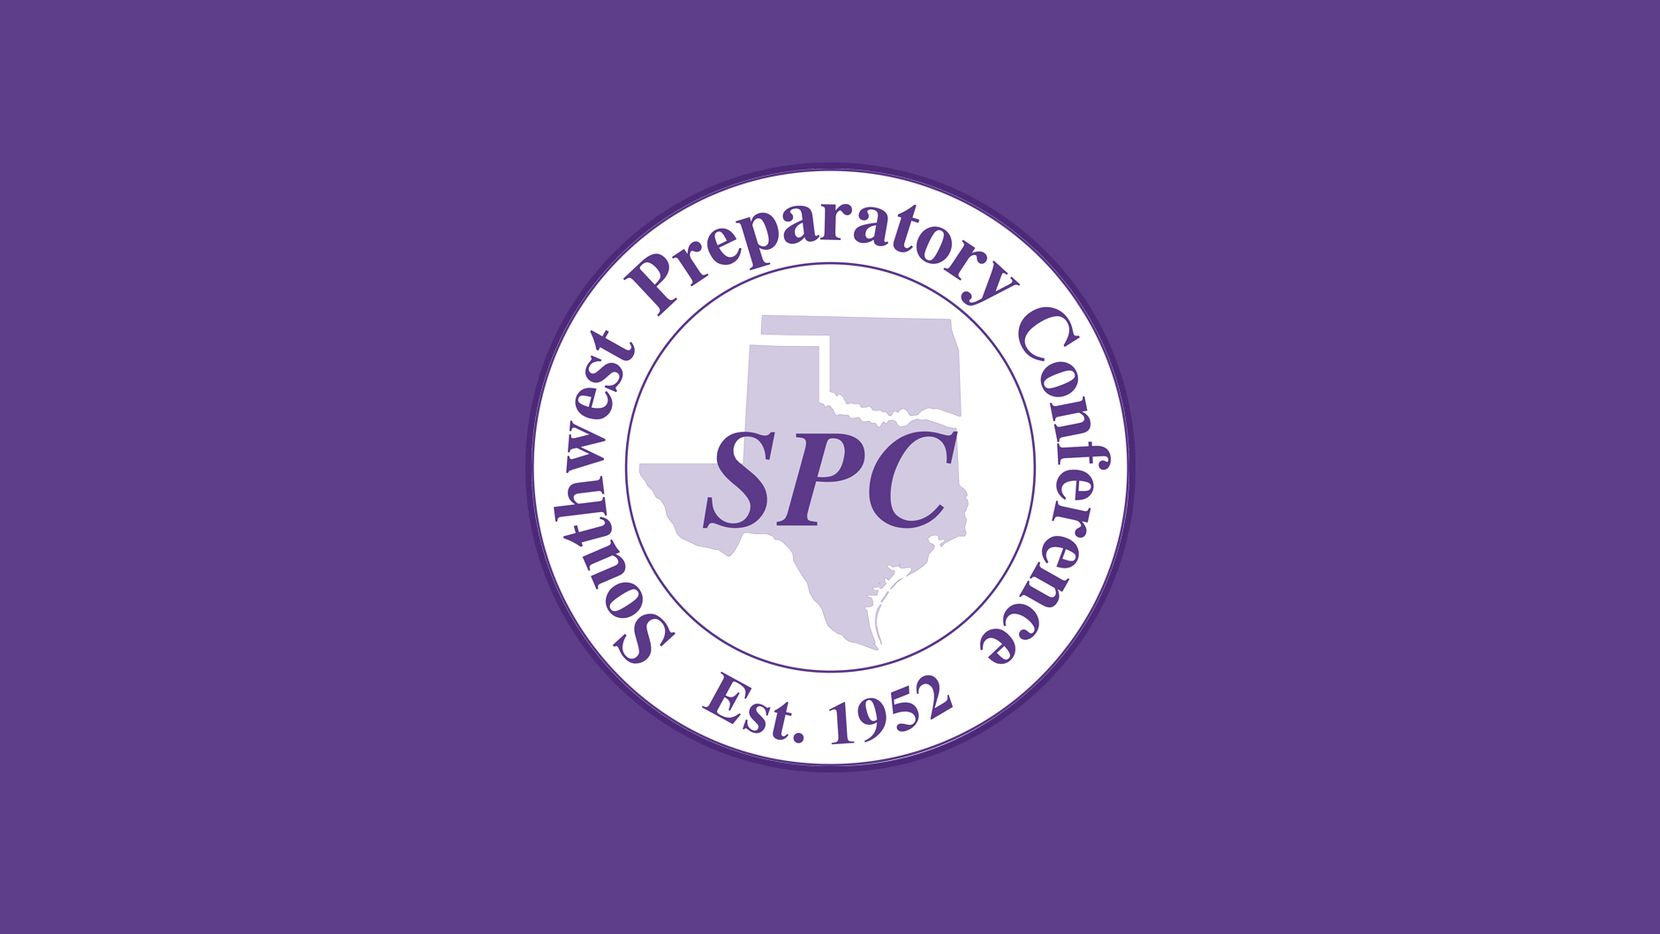 The 2019 Southwest Preparatory Conference winter championships are this weekend in Fort Worth.